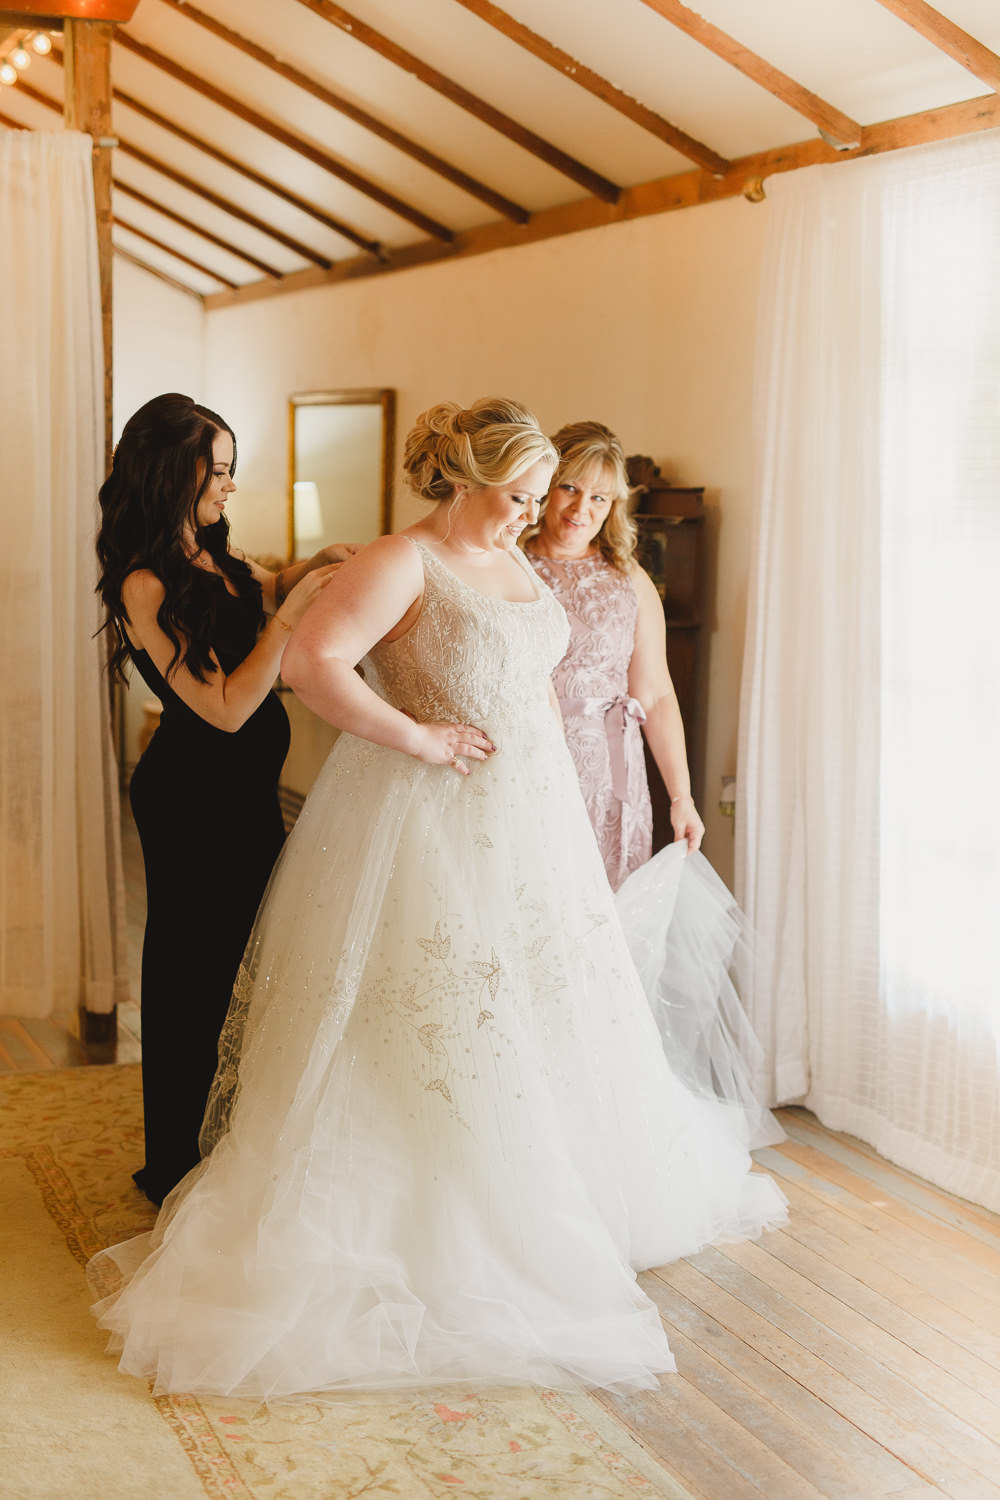 Dress Gown Bride Bridal Lazaro Perez Sequin Tulle Straps Enchanted Forest Wedding Kristen Booth Photography